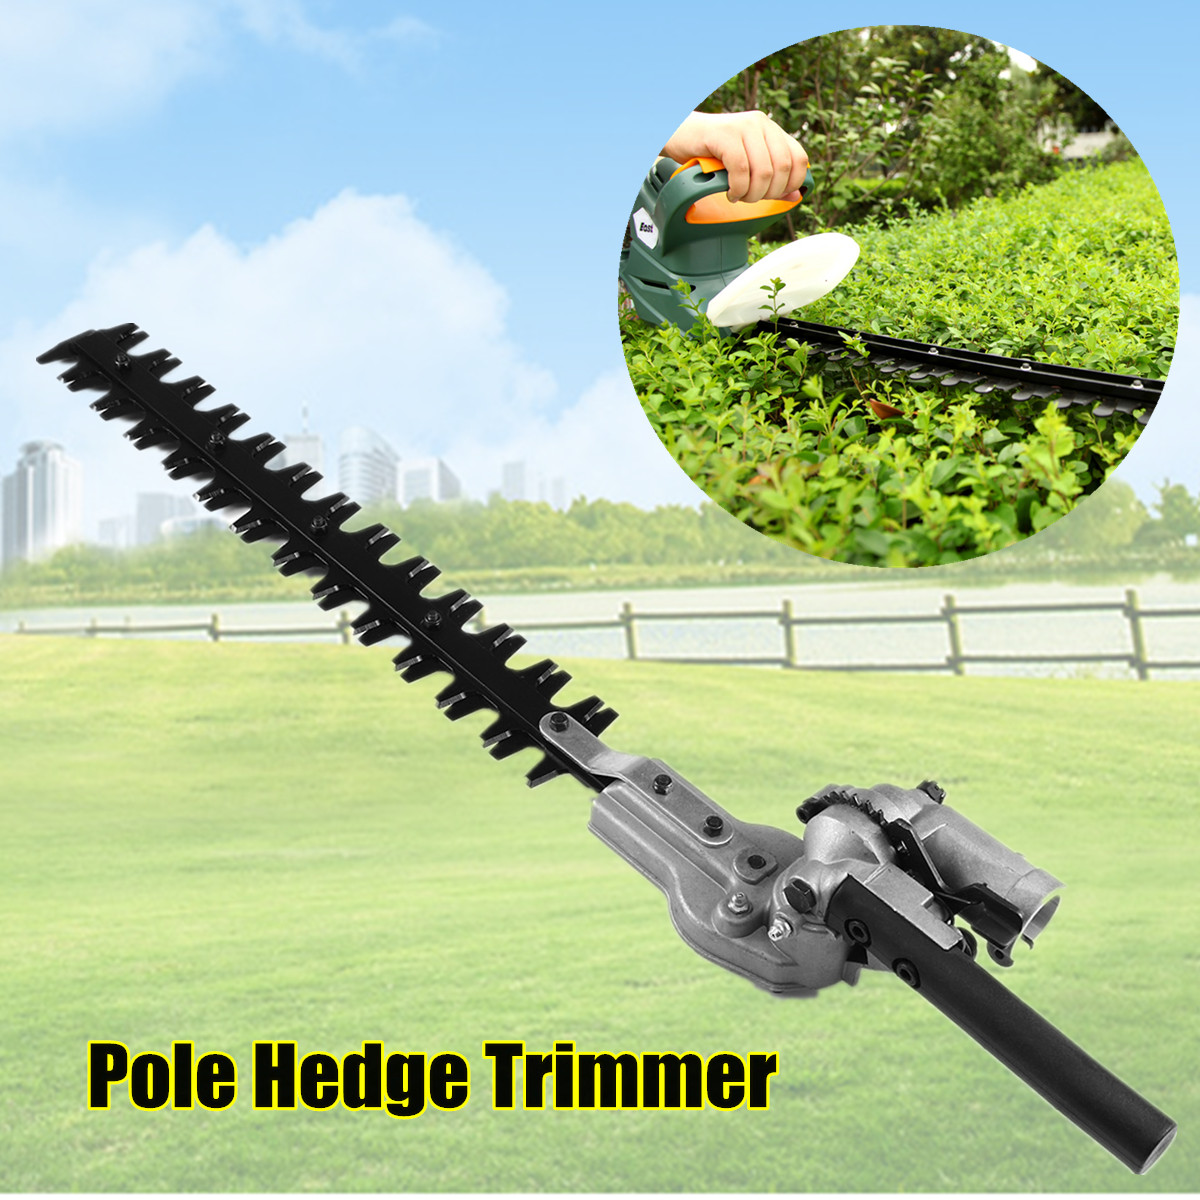 7/9 Teeth Pole Hedge Trimmer Bush Cutter Head Grass Trimmers For Garden Multi Tool Pole Chainsaw Garden Power Tools